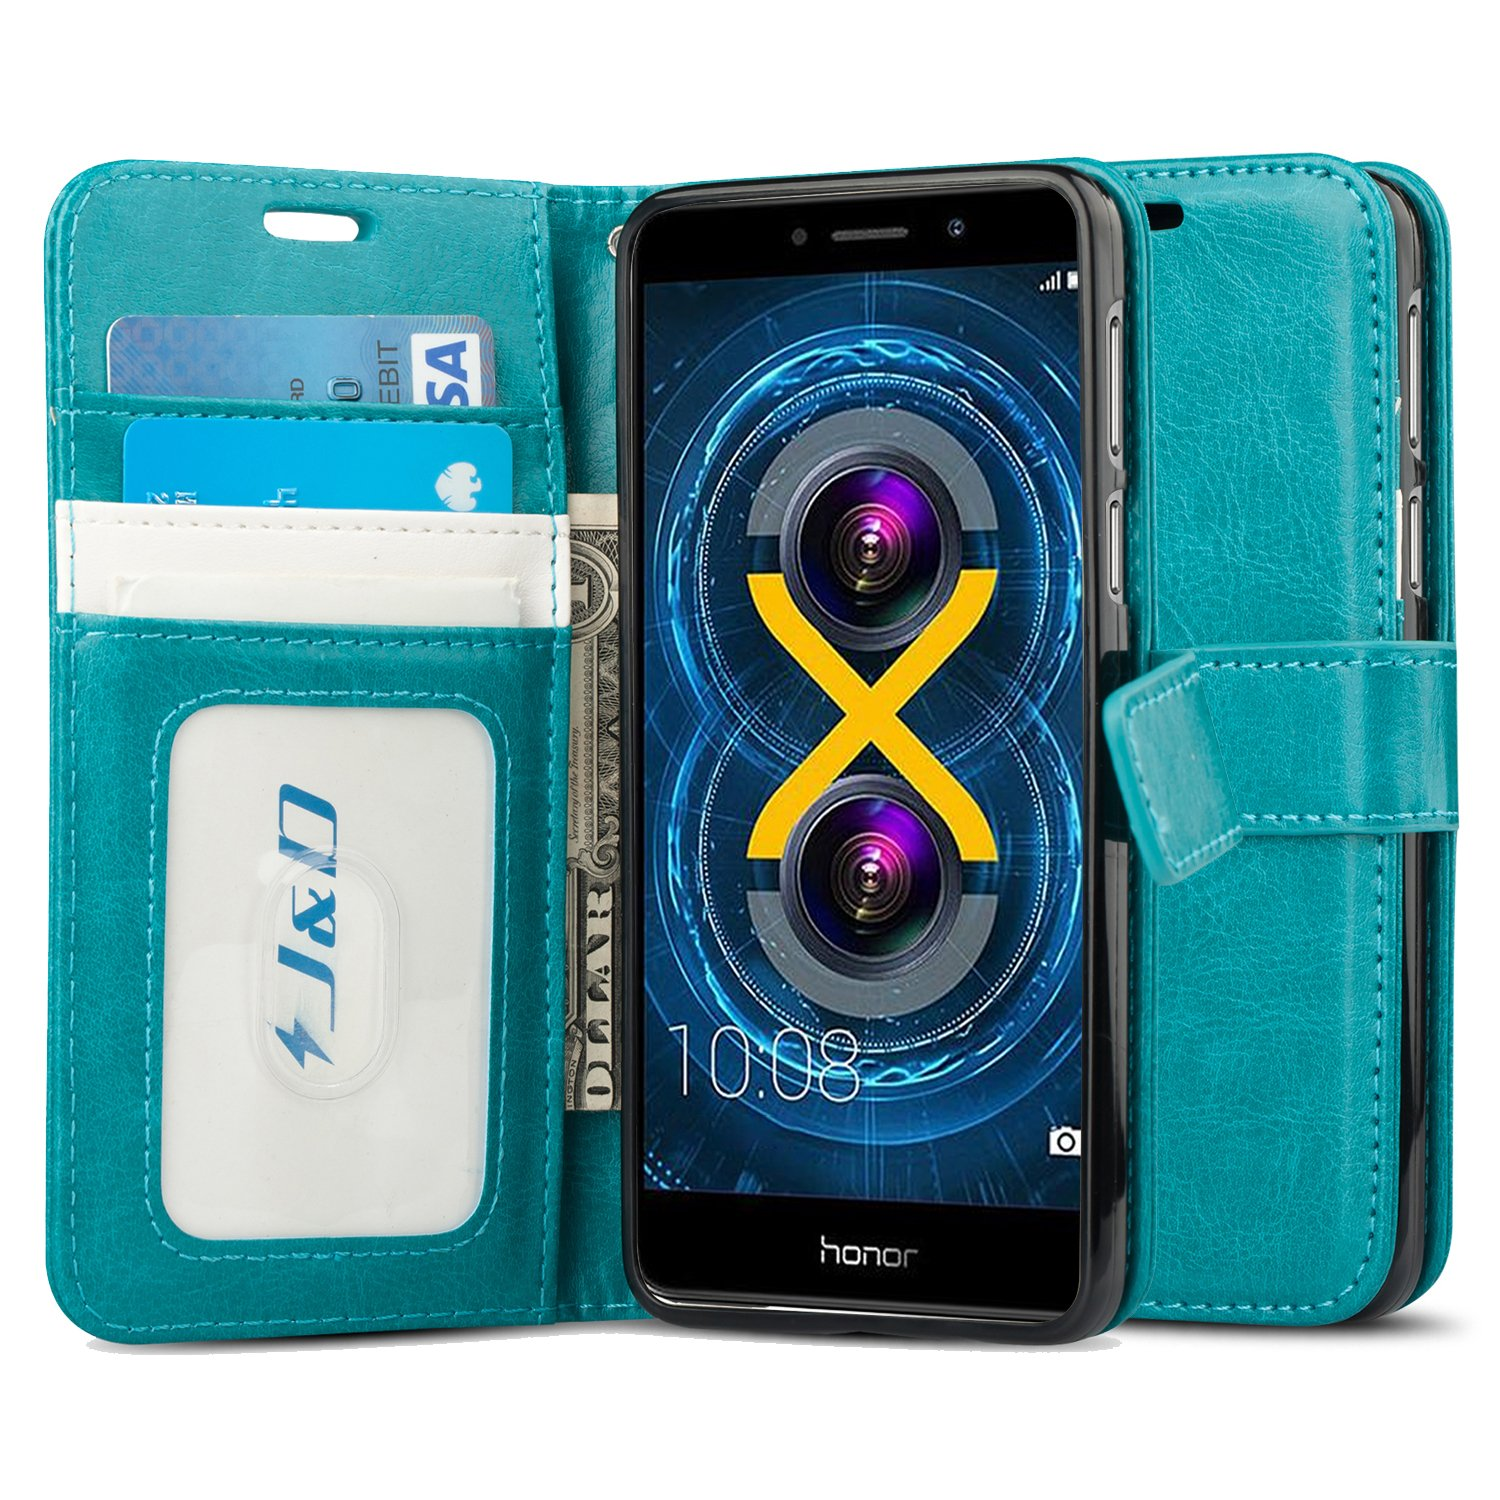 Honor 5X Wallet Case Leather COTDINFORCA Premium PU Embossed Design Magnetic Closure Protective Cover with Card Slots for Huawei Honor 5X 5.5 inch Luck Clover Blue